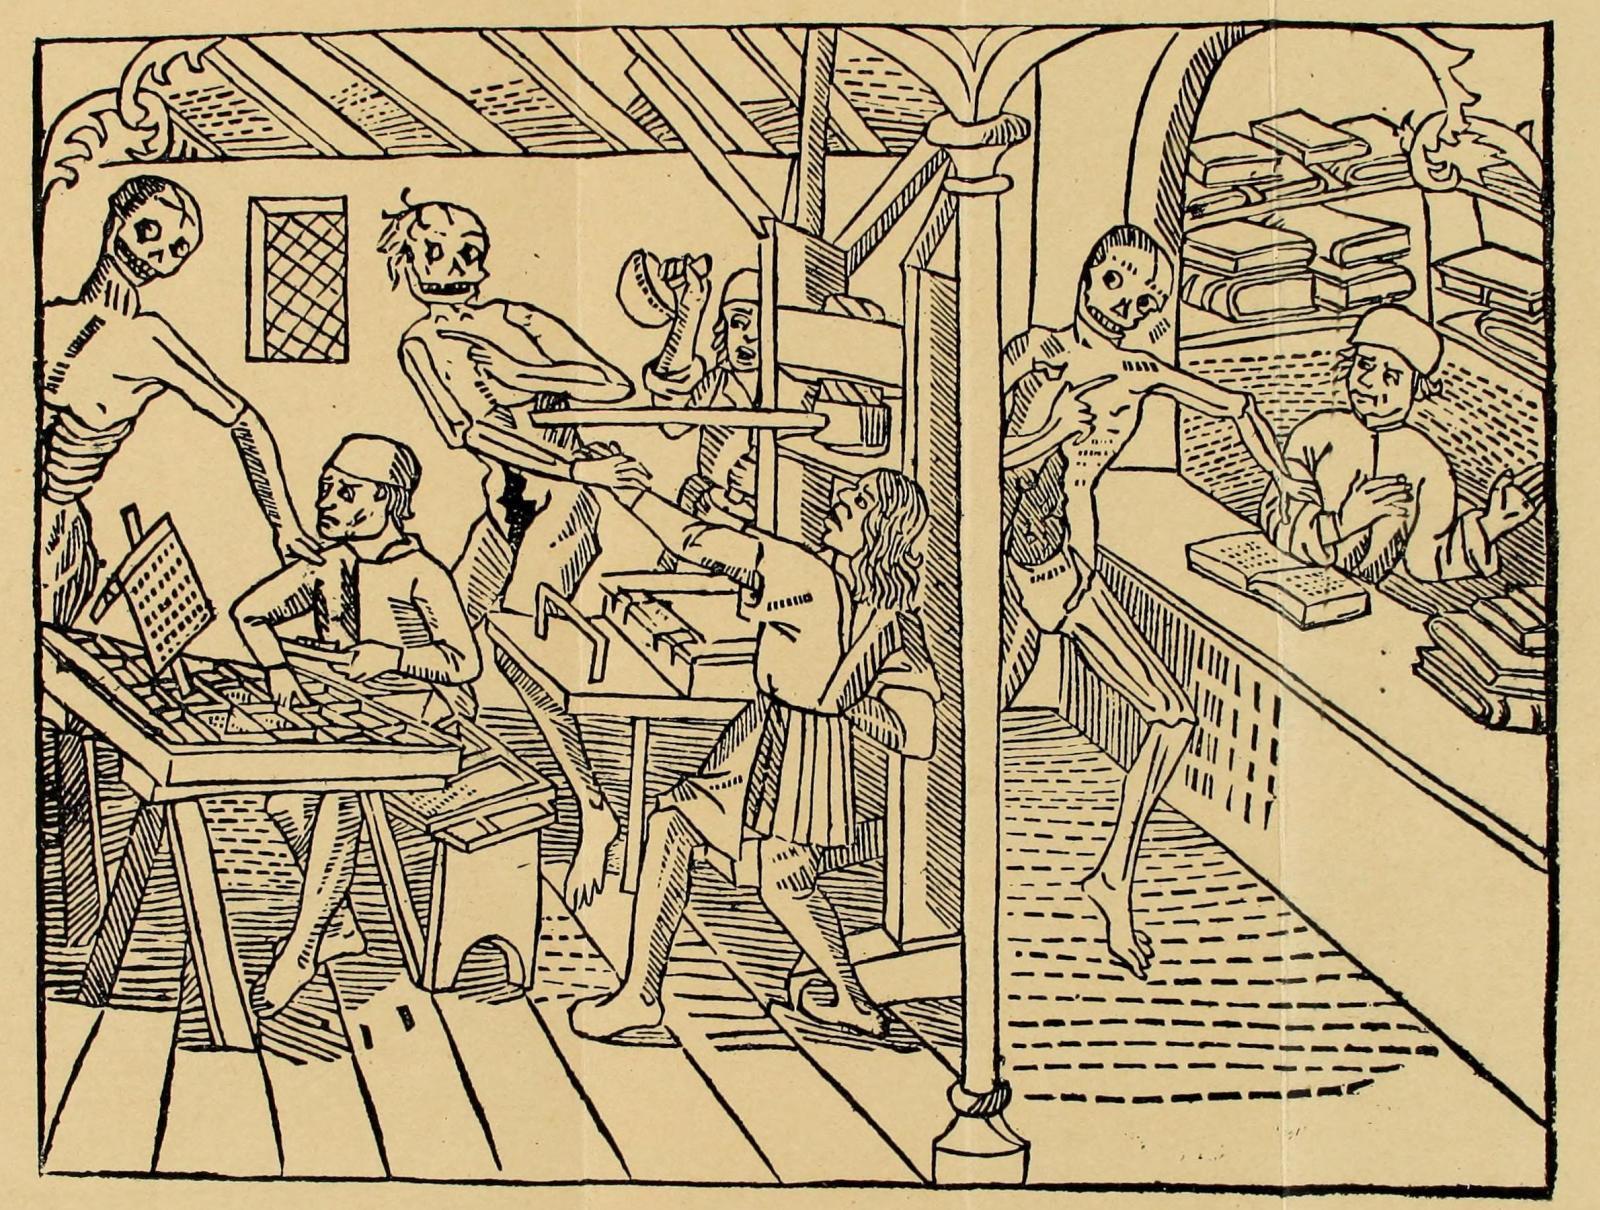 Matthias Huss,  Danse Macabre  1499. The earliest known depiction of a printing press, with the printer, compositor, and bookseller all pursued by Death.